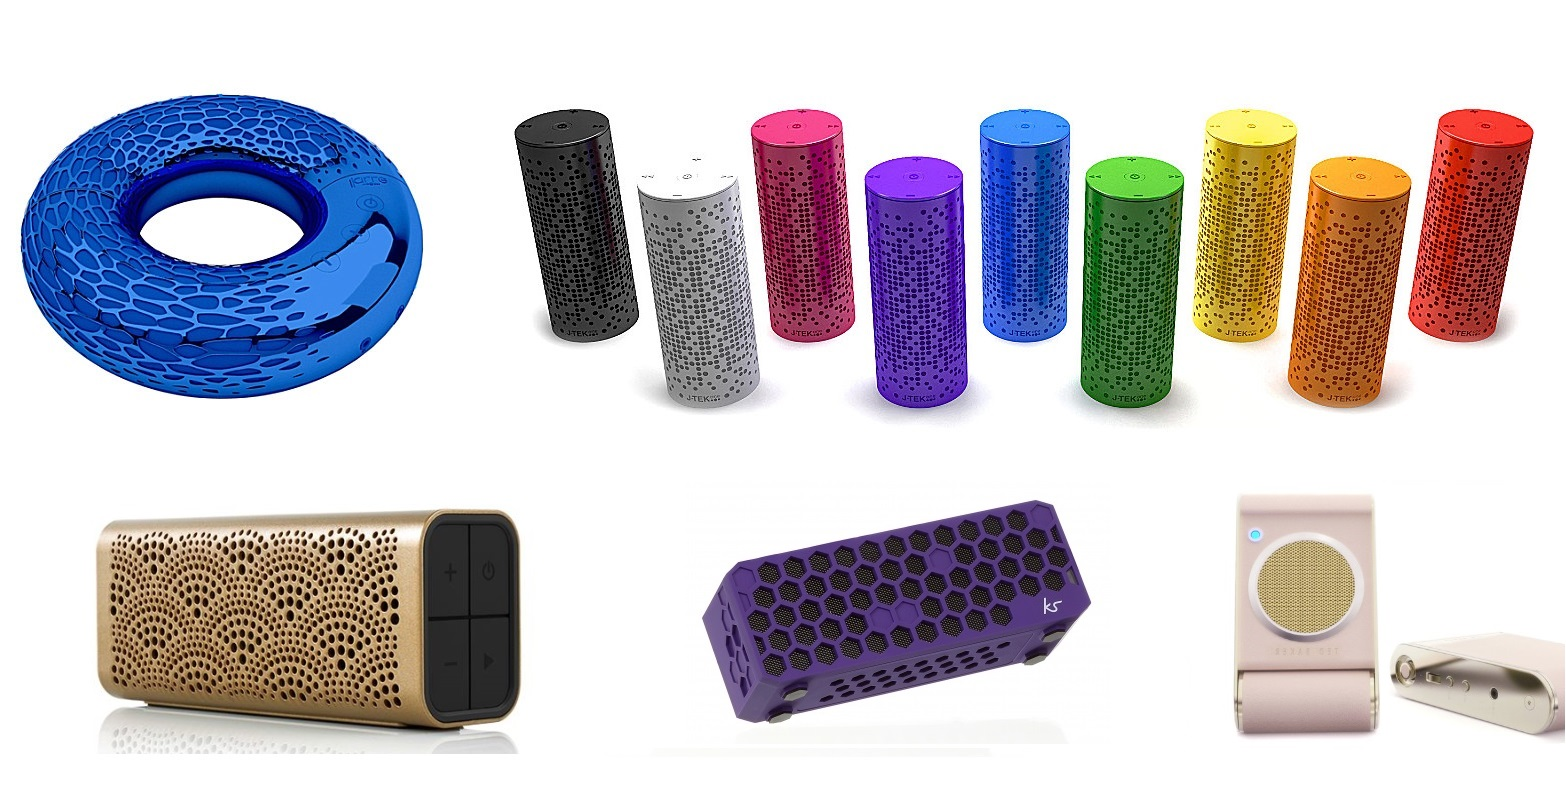 5 Of The Best Looking Bluetooth Speakers In The Uk